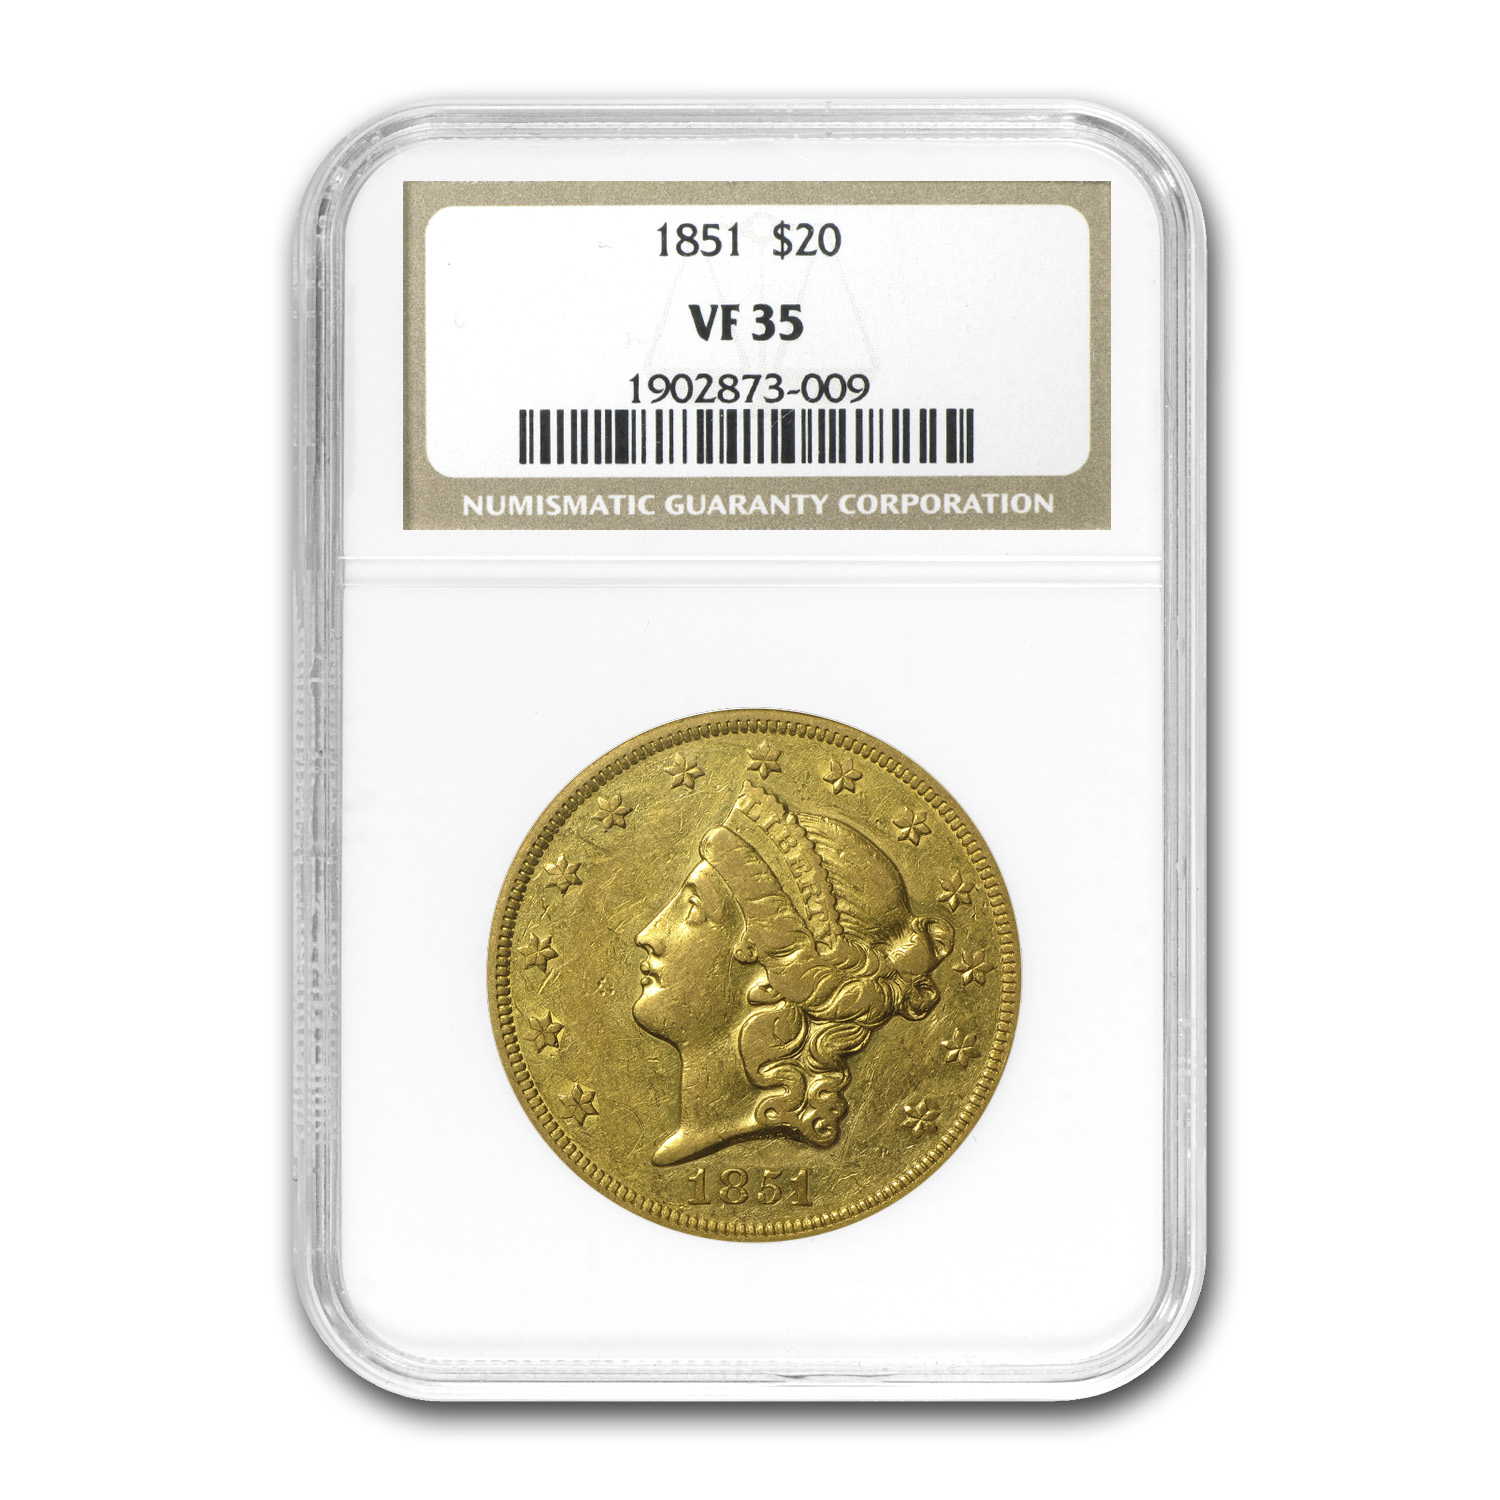 1851 $20 Gold Liberty Double Eagle - VF-35 NGC